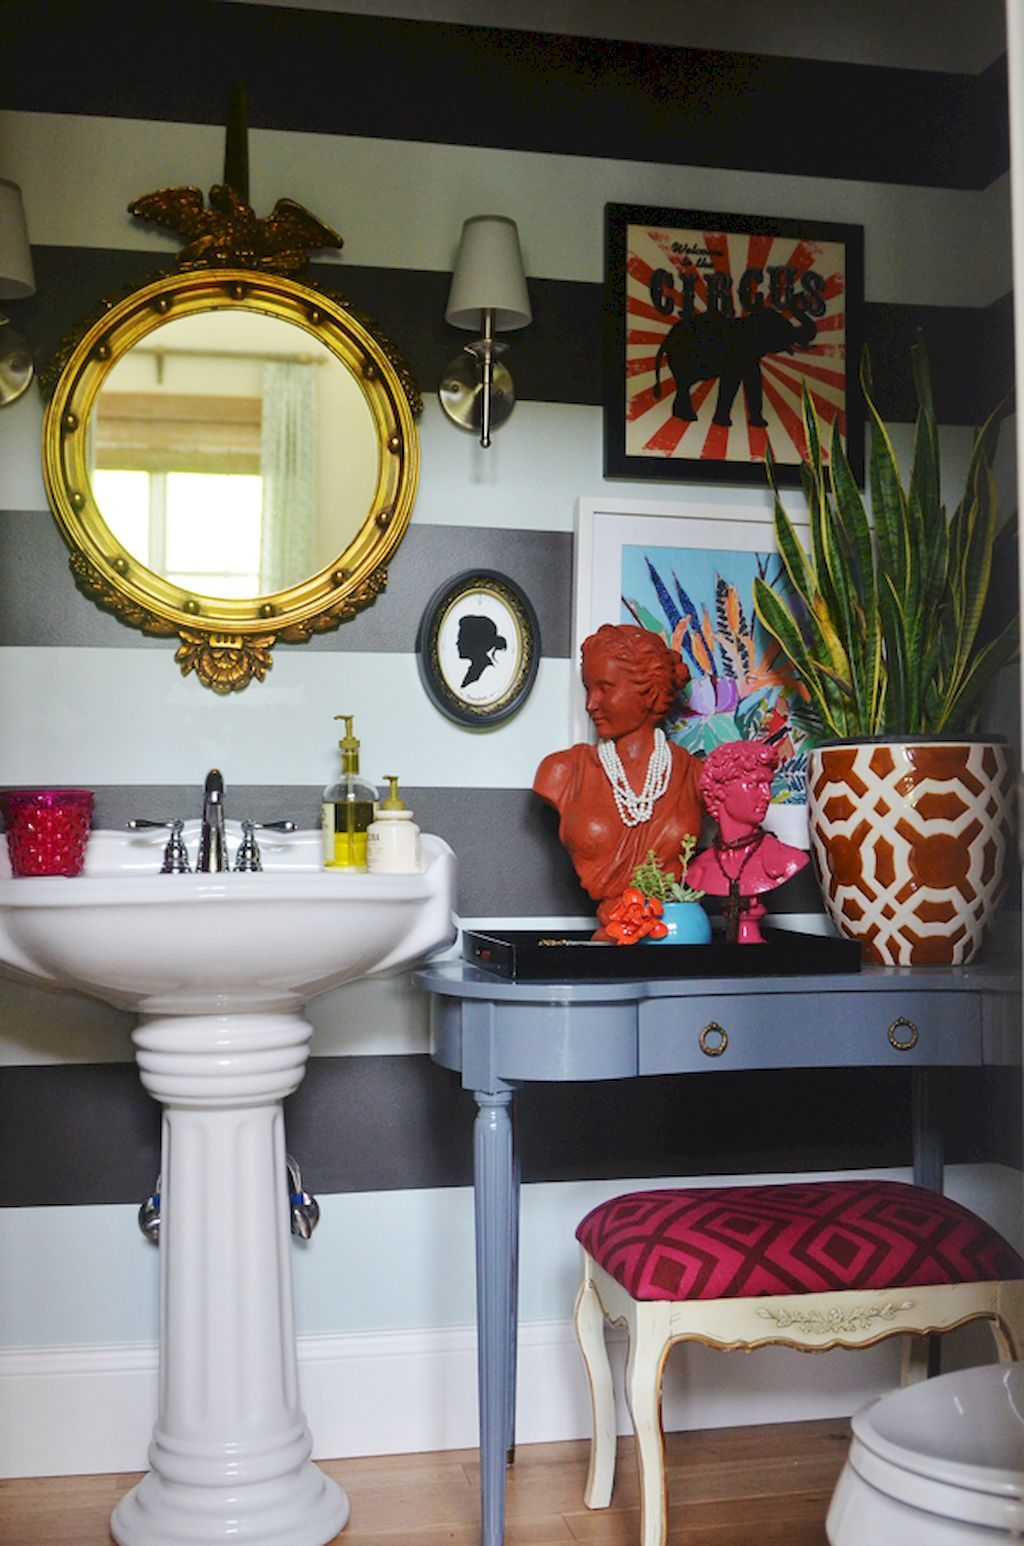 22 Eclectic Ideas Of Bathroom Wall Decor: 60 Eclectic Bathrooms Ideas Decoration